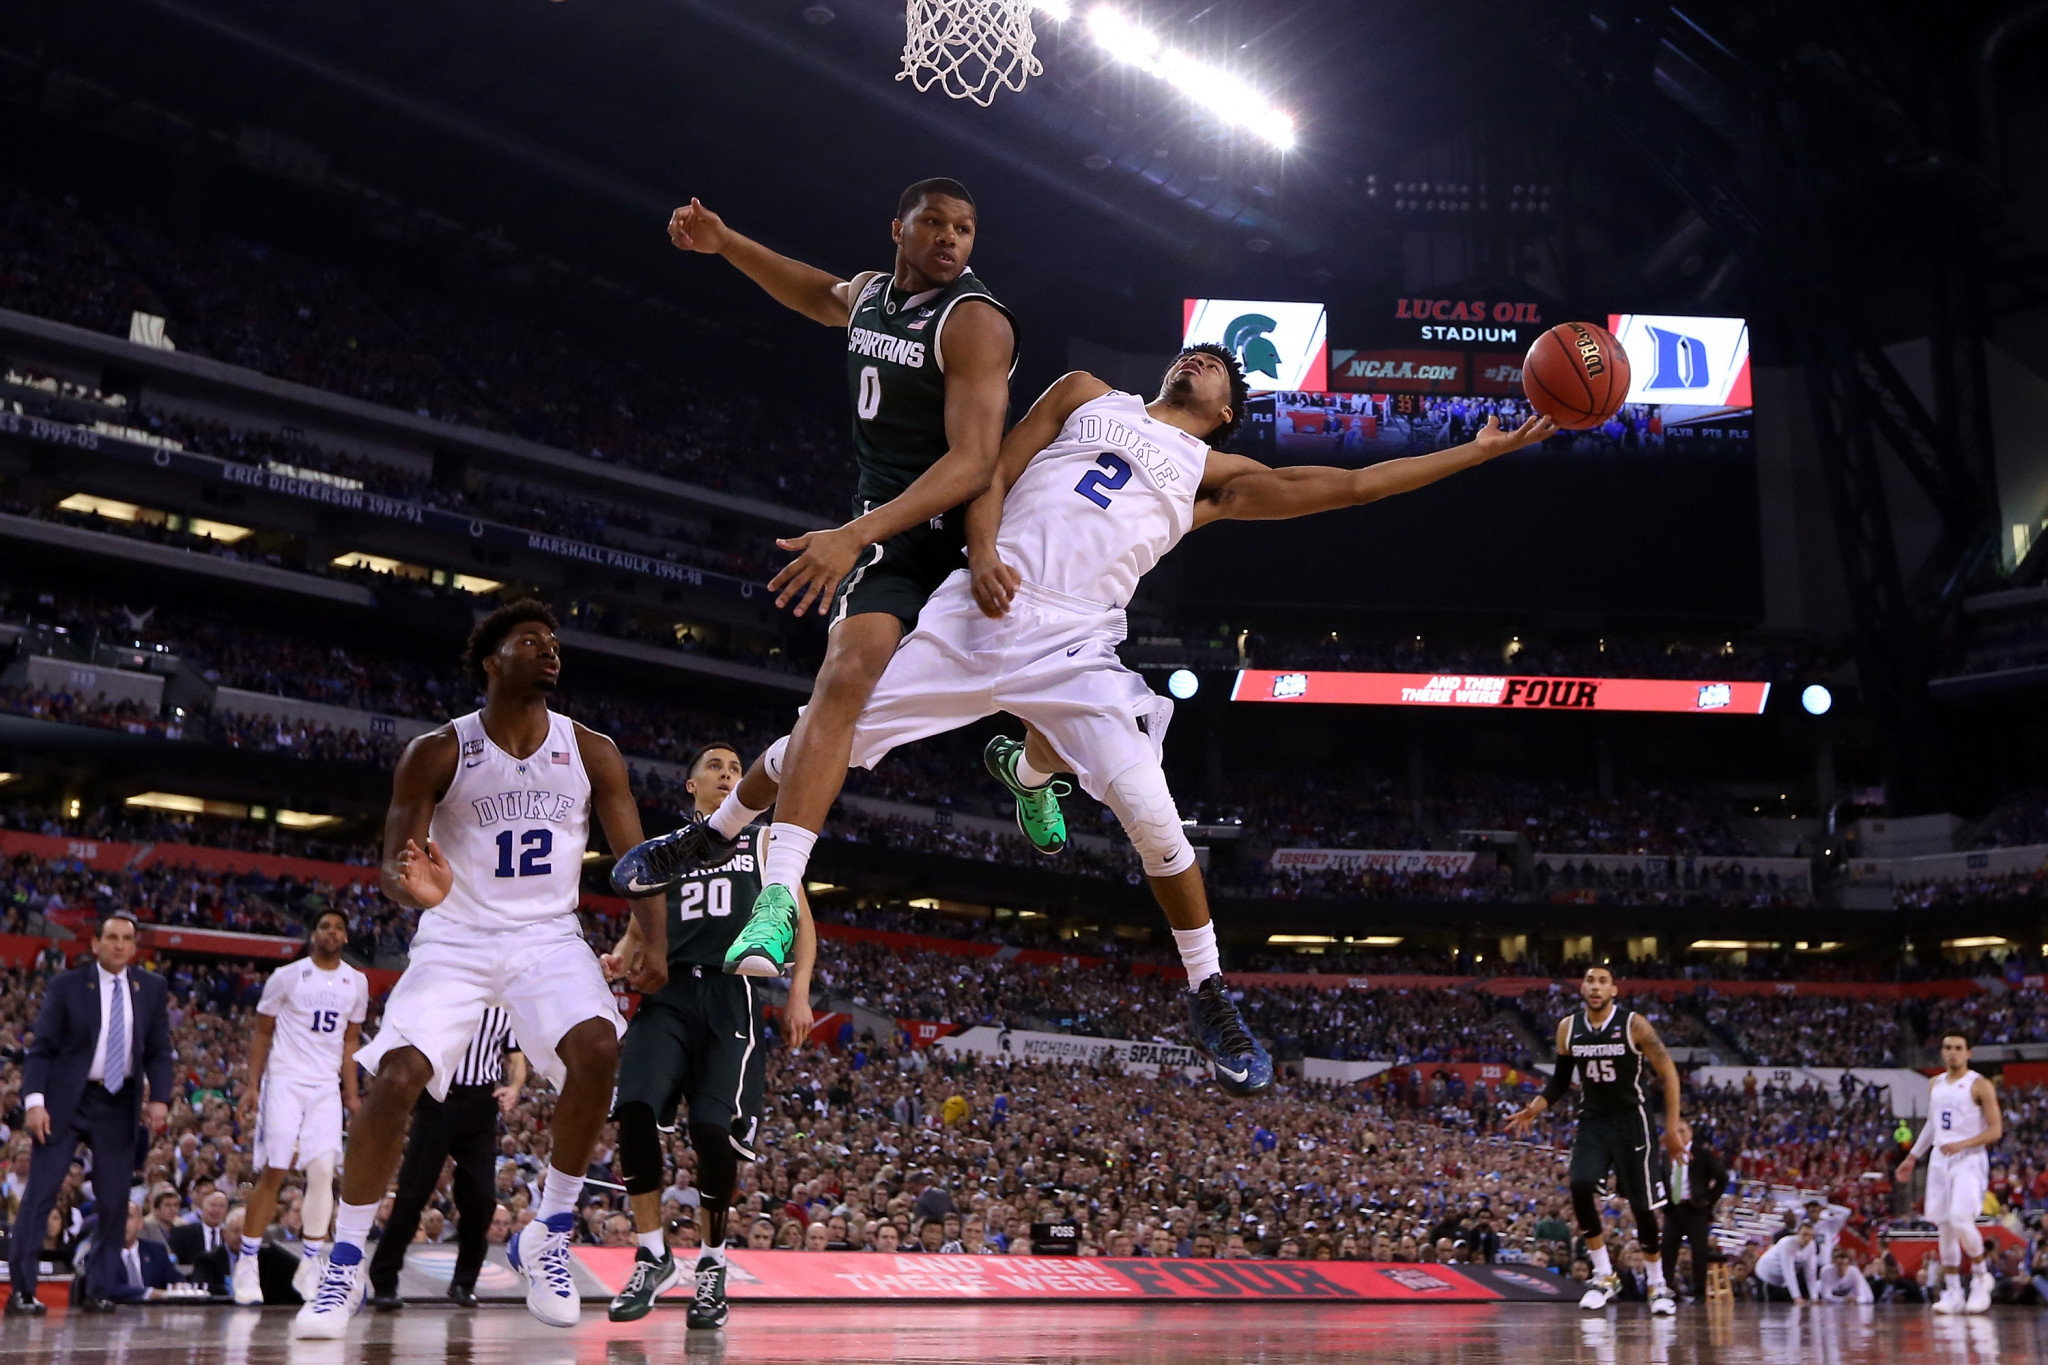 Indianapolis was already slated to host the Final Four in 2021, having last done so in 2015 ©Getty Images